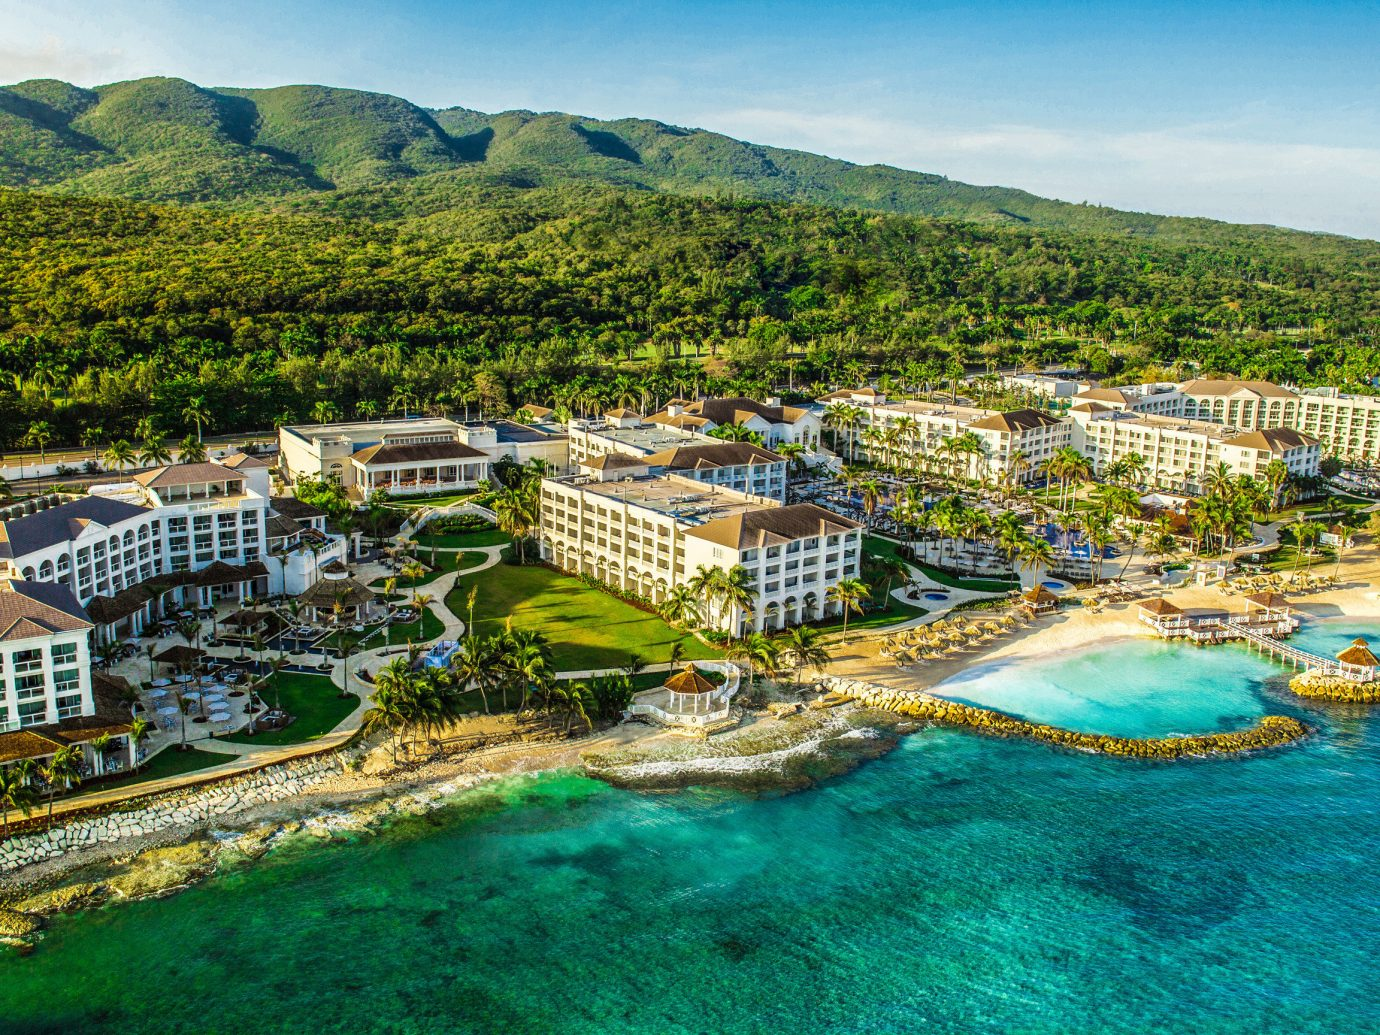 Hotels sky mountain outdoor bird's eye view aerial photography geographical feature landmark Town estate scene Harbor Resort tourism vacation Sea park surrounded